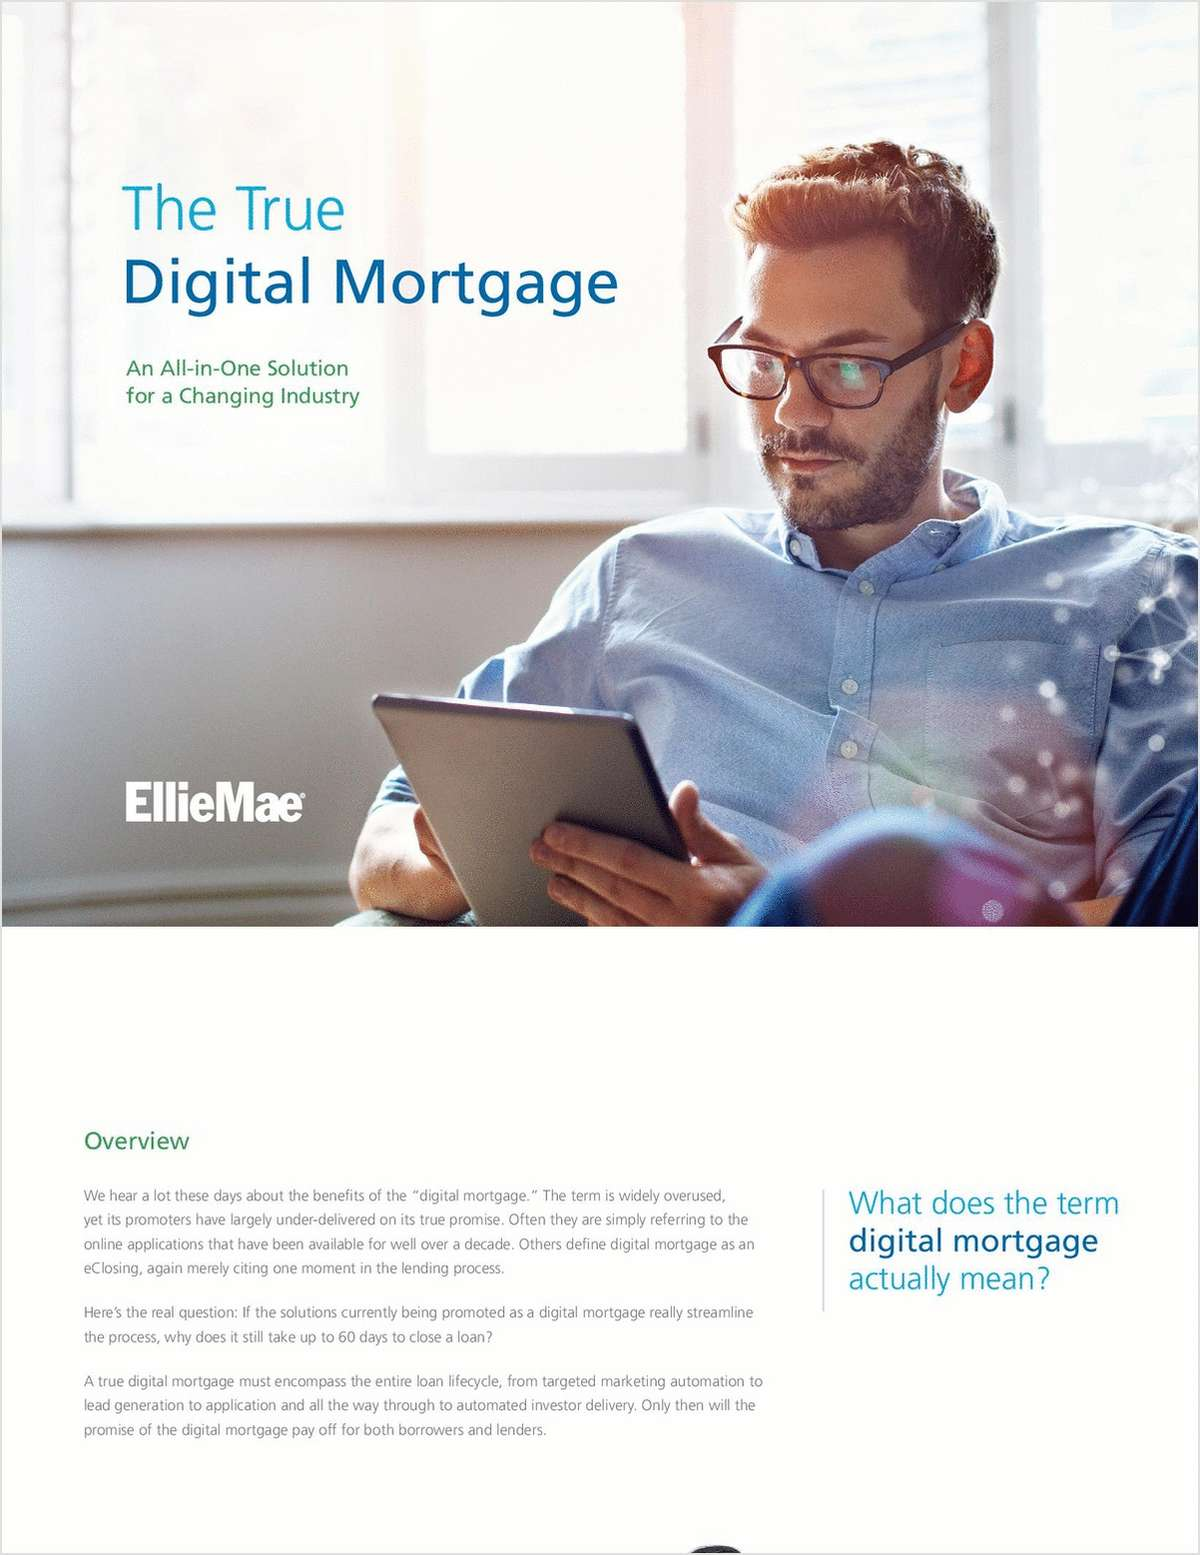 How a True Digital Mortgage Delivers an Experience Members Want